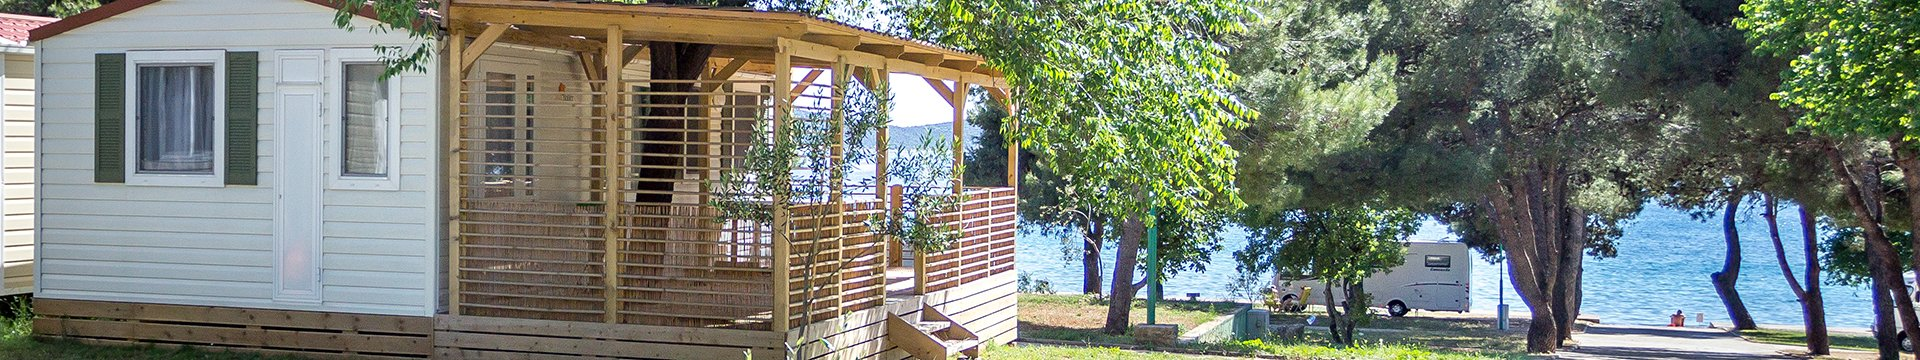 Stacaravans homes in region Dalmatia-Šibenik | AdriaCamps